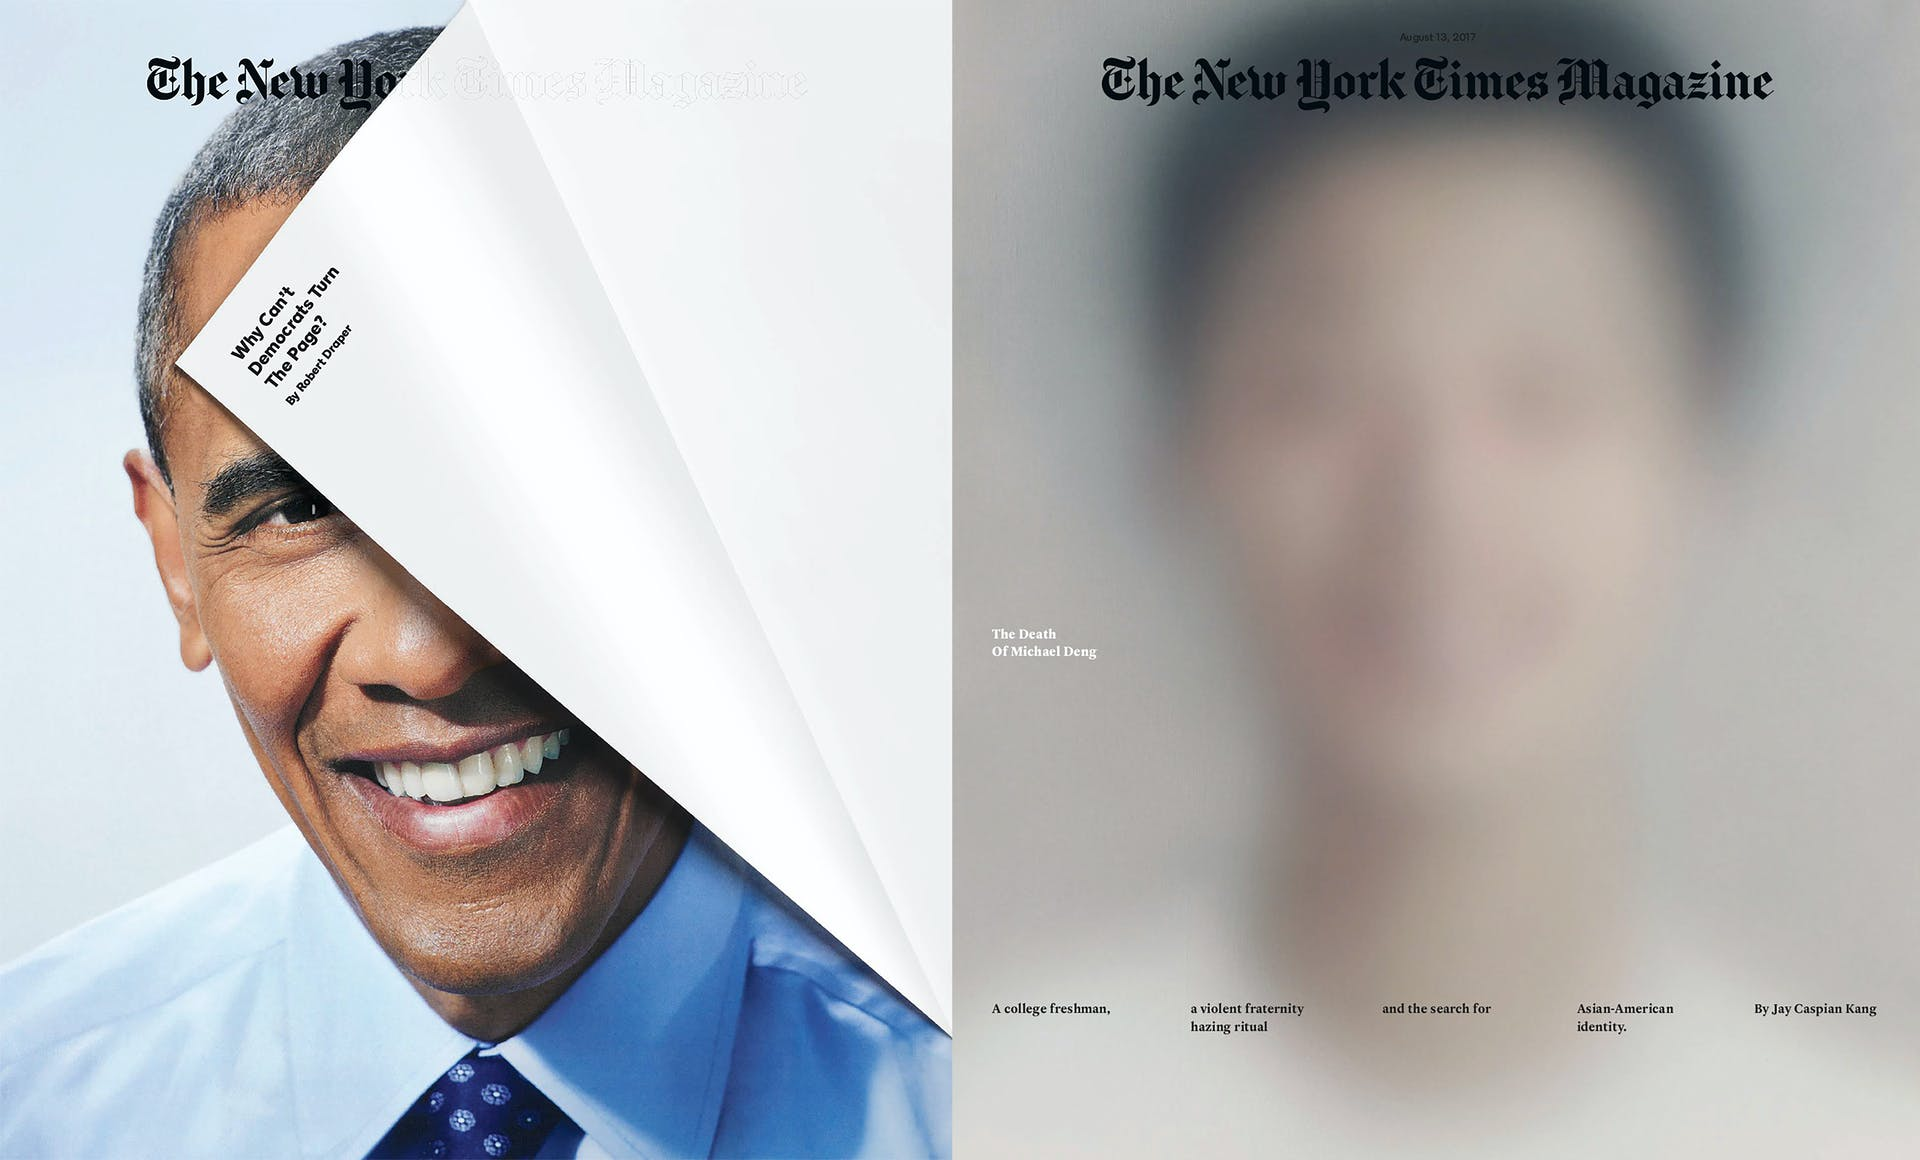 NY Times Magazine covers by Gail Bichler